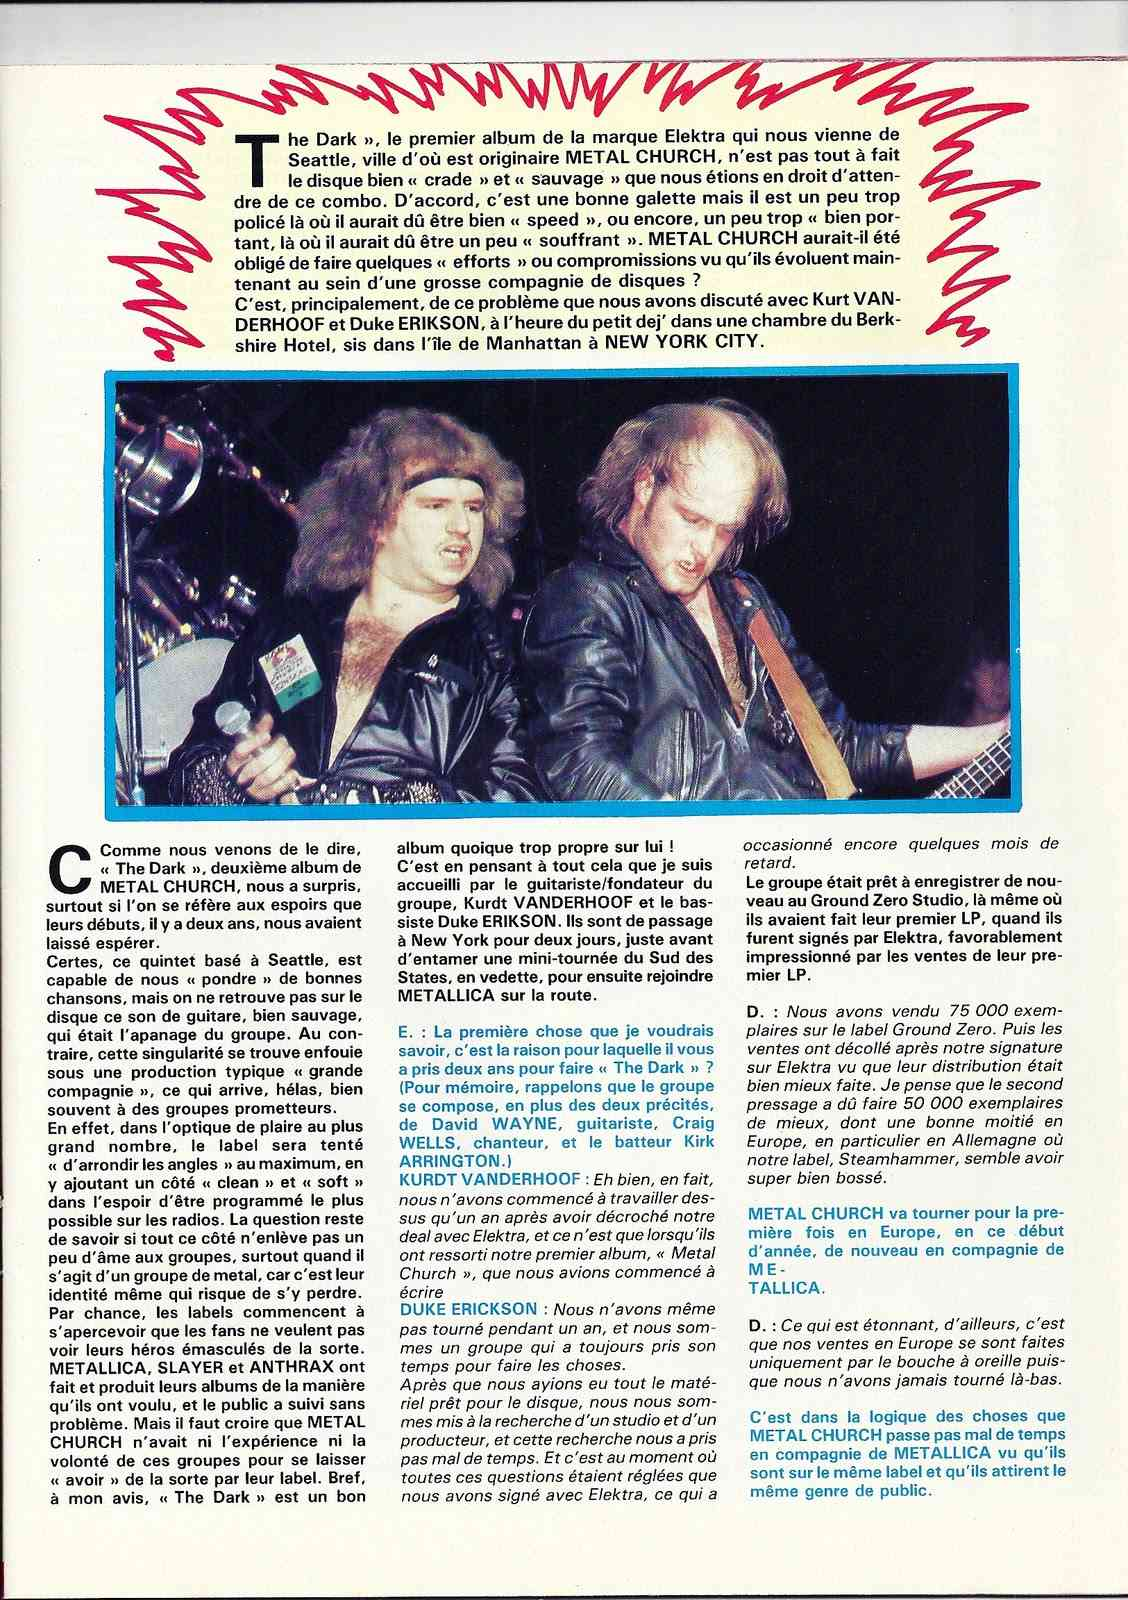 METAL CHURCH ... espoirs 87 (Enfer Magazine Février 1987) Archive à lire Numyri39